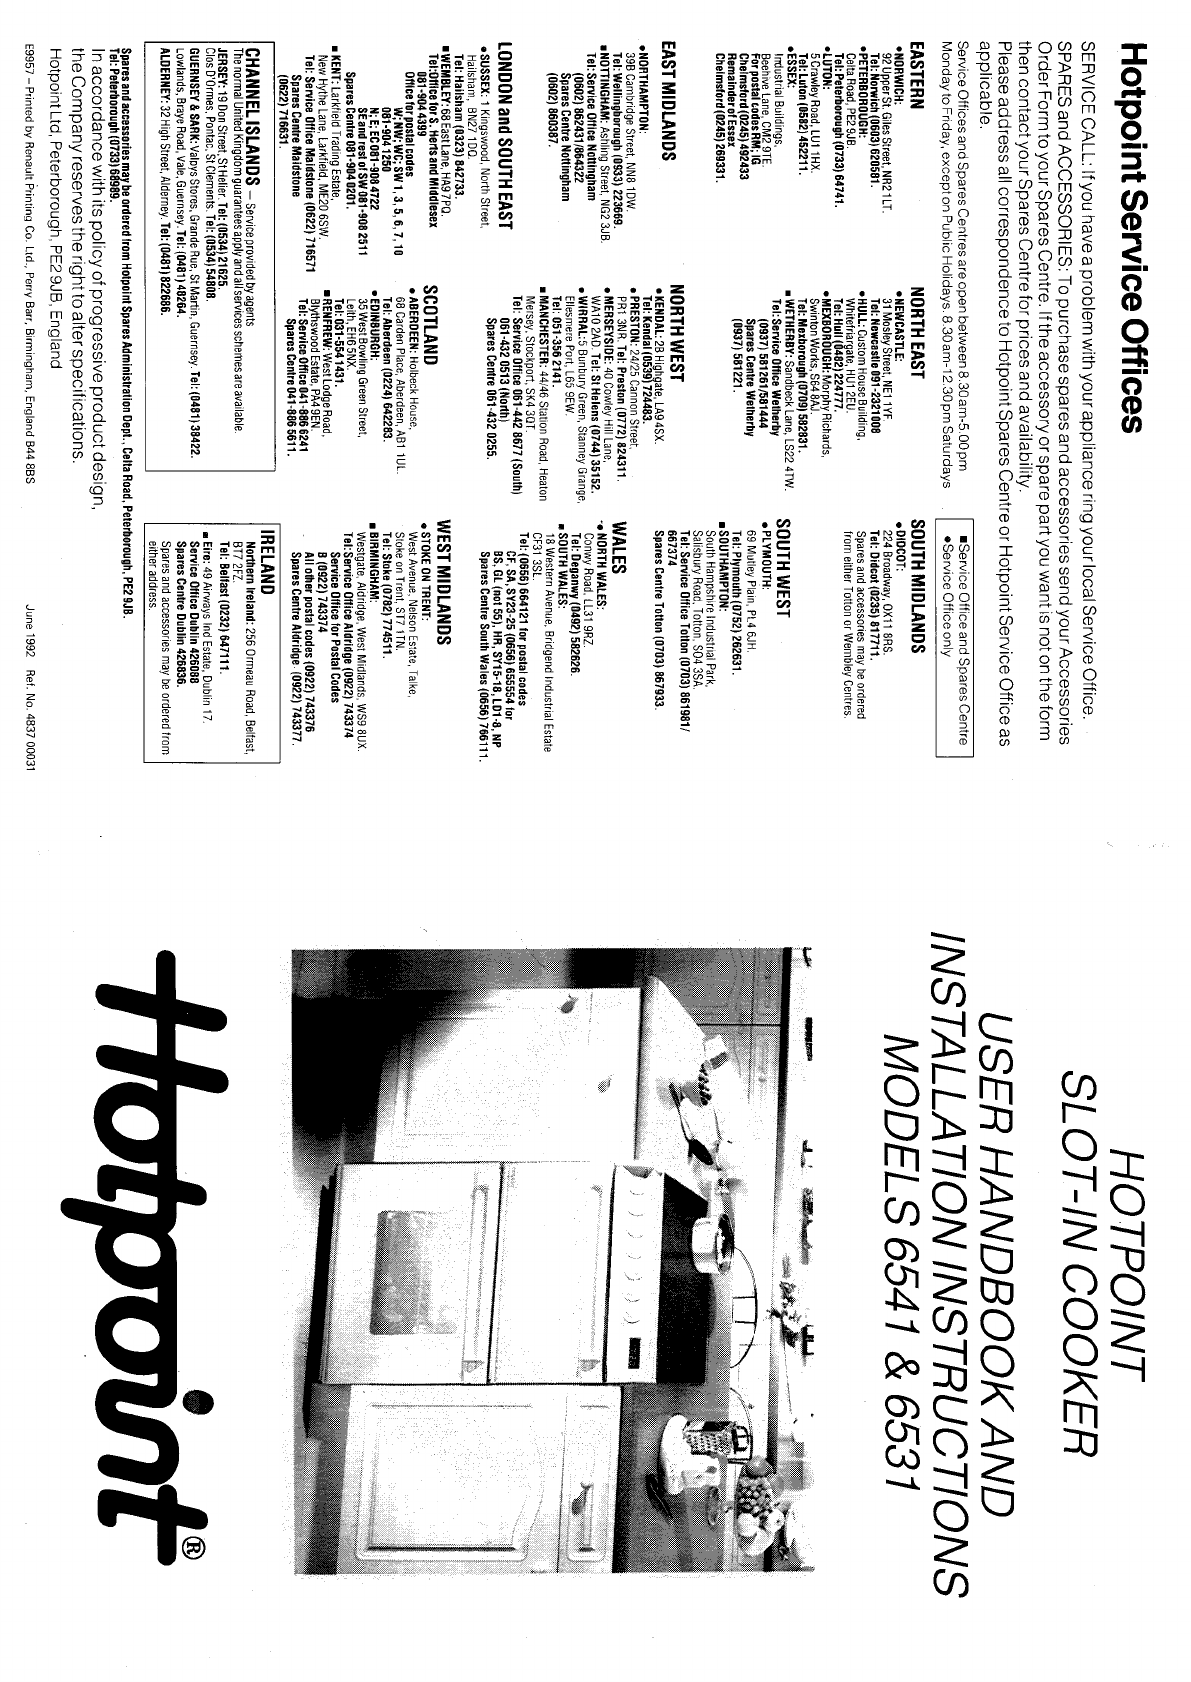 hotpoint cooktop 6531 user guide manualsonline com